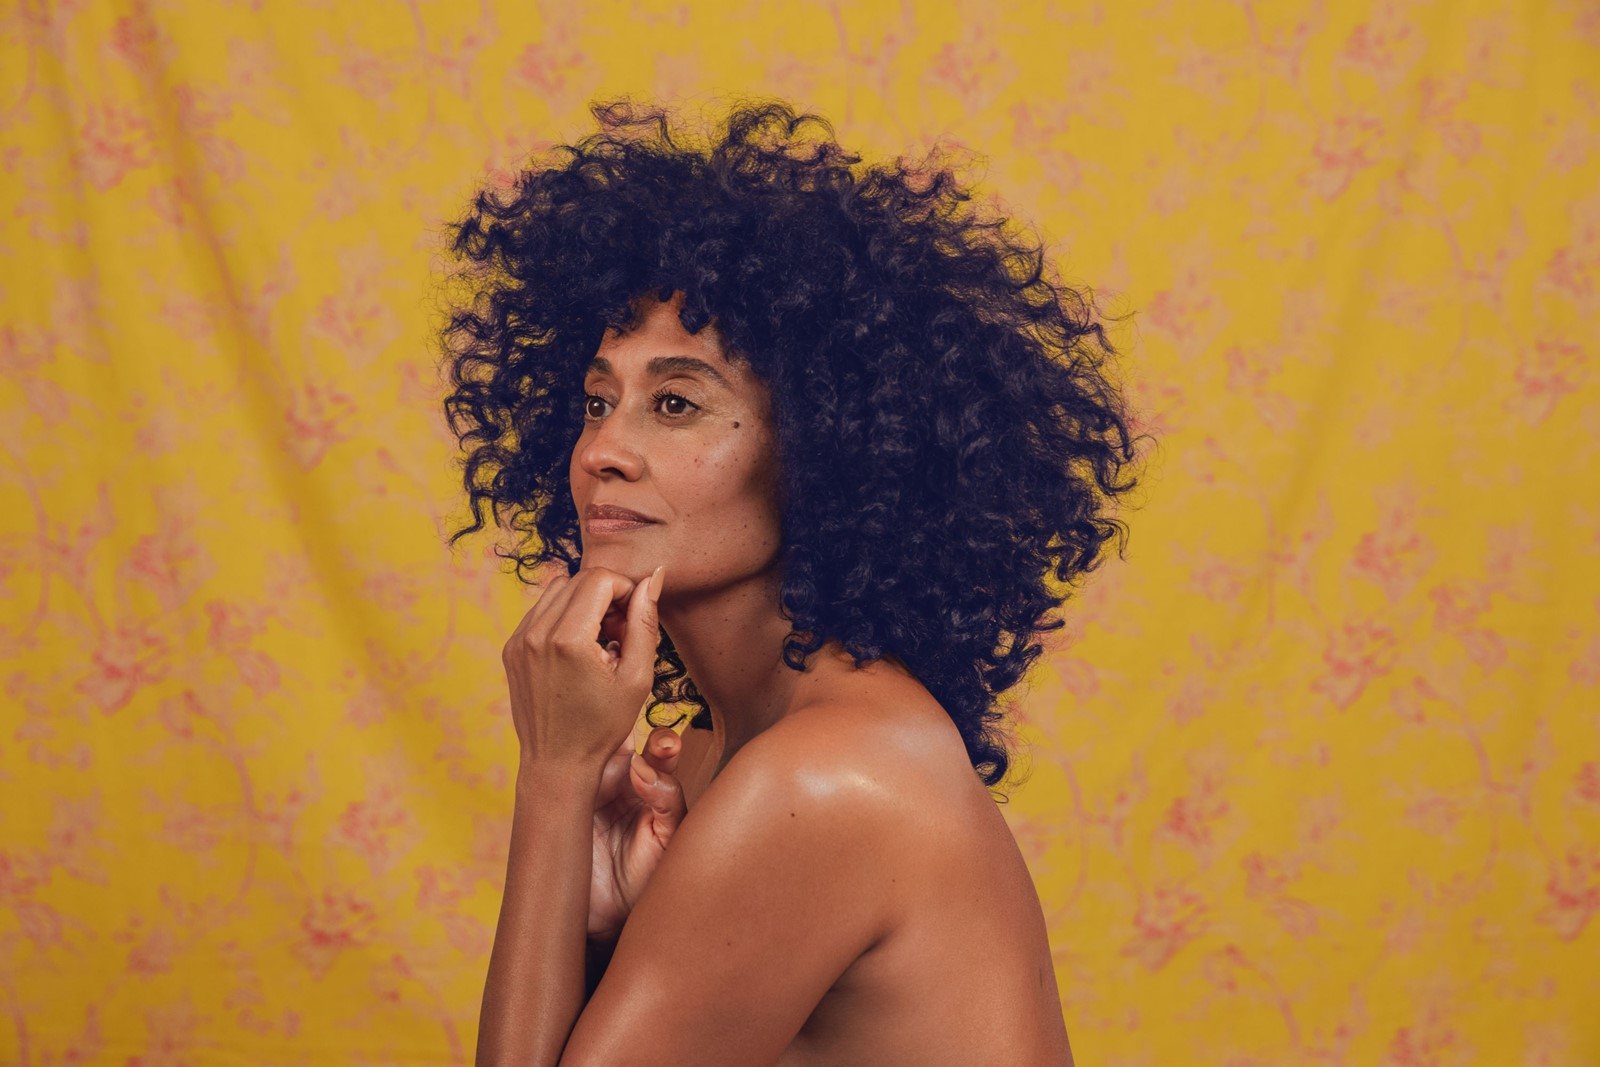 'I put beer in my hair' – Tracee Ellis Ross on going from hair woes to wins